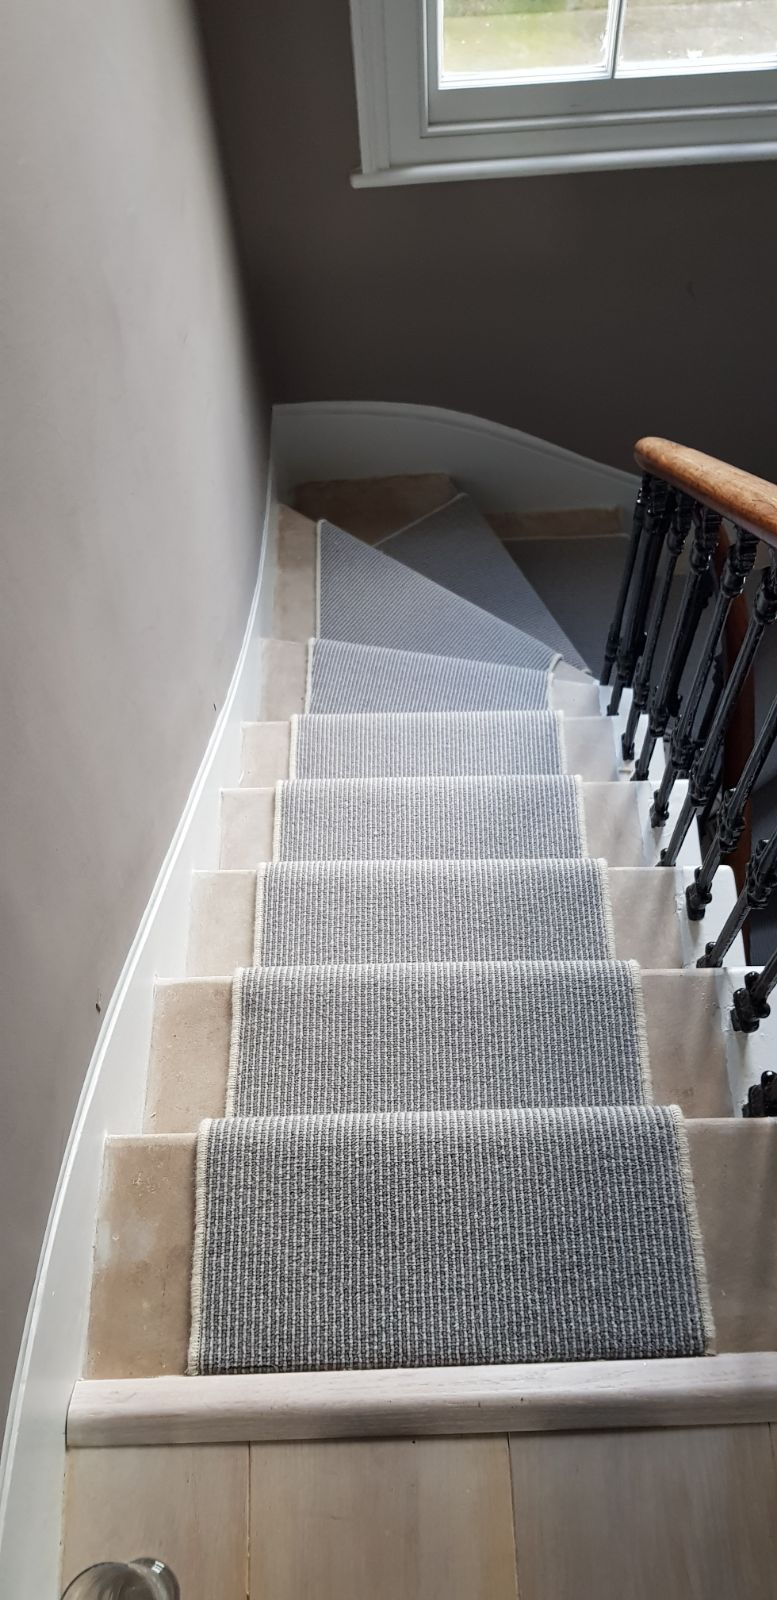 portfolio carpets GREY STRIPED CARPET WITH WHITE WHIPPING TO STAIRS (4)